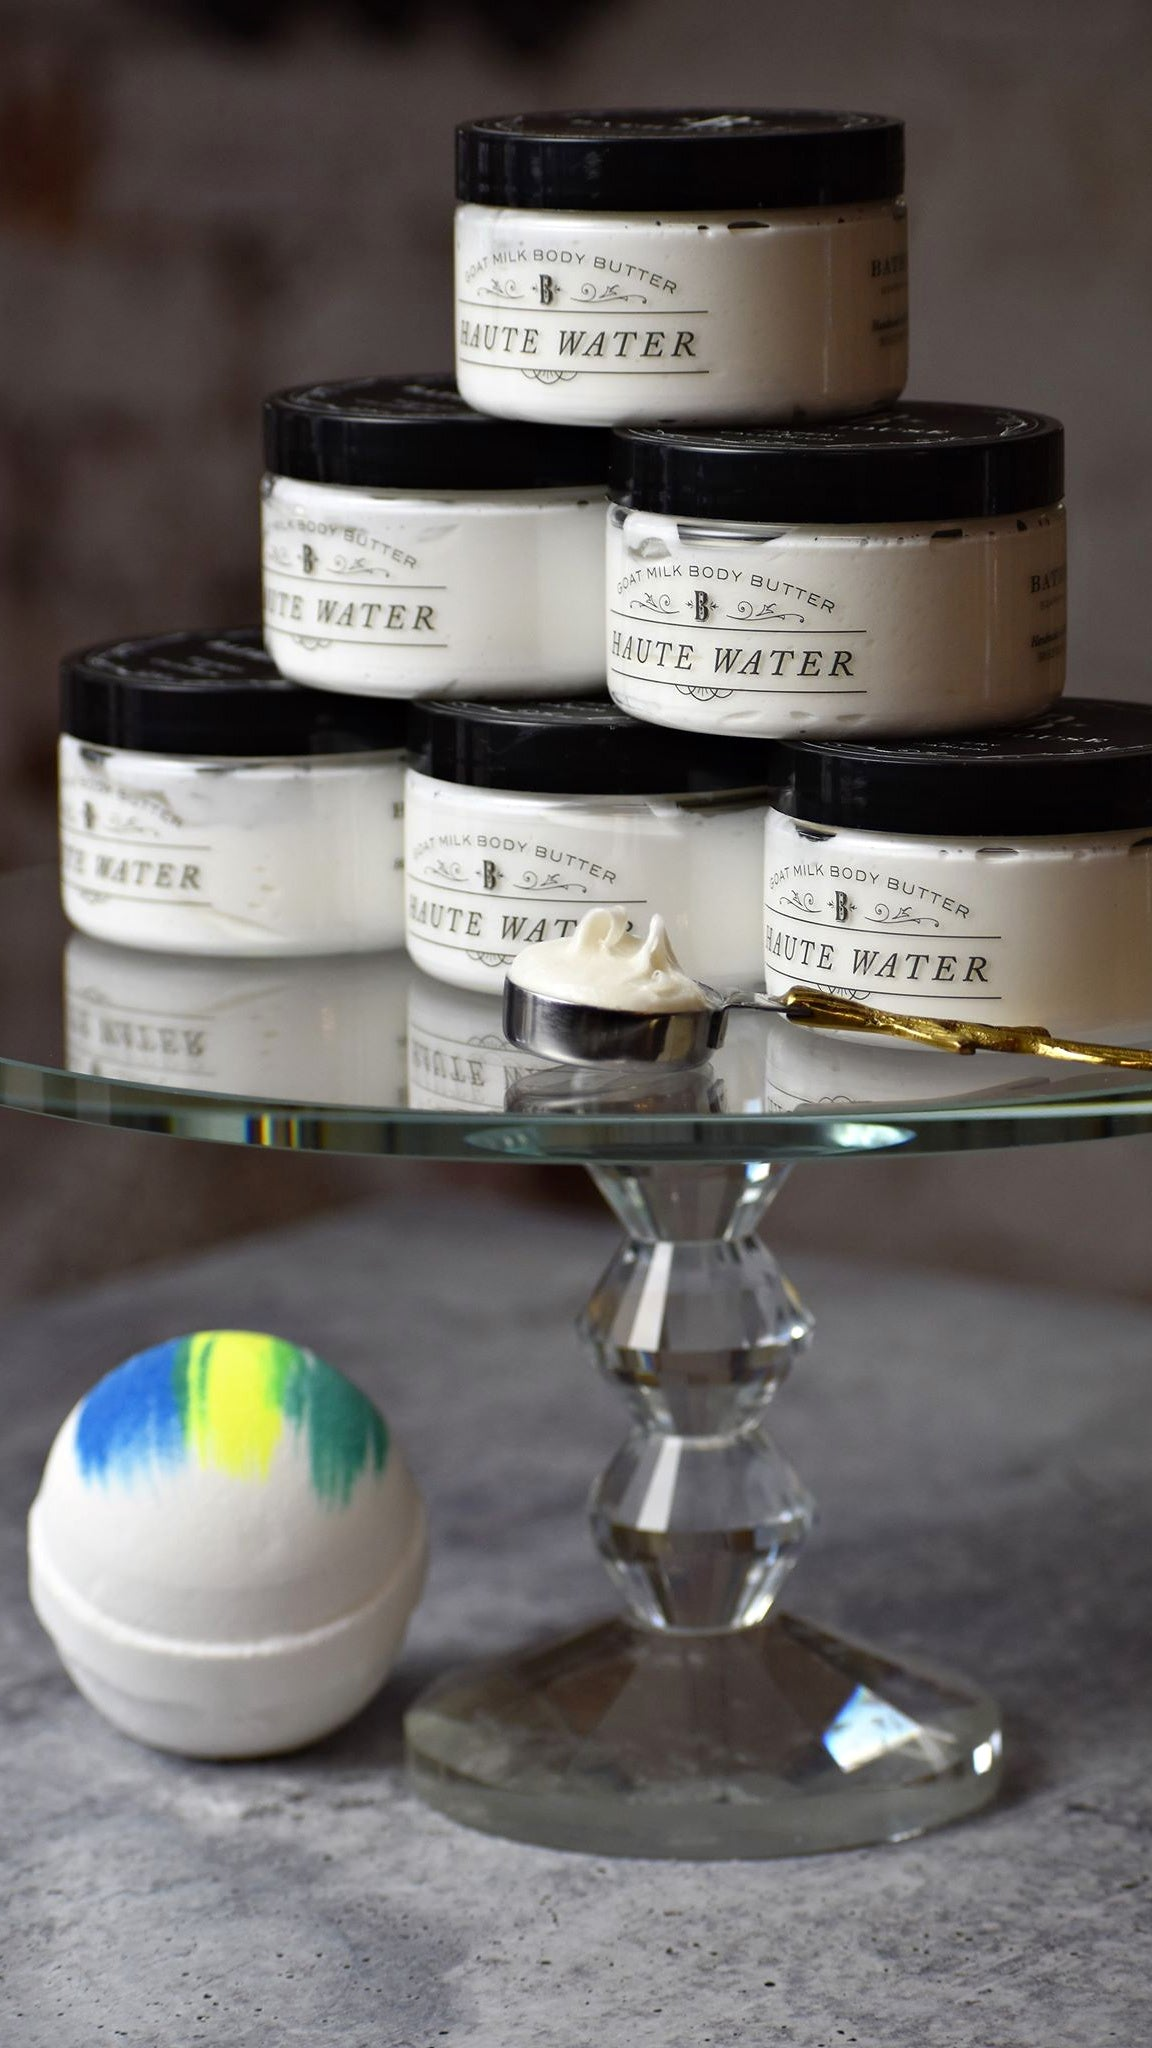 Haute Water Body Butter